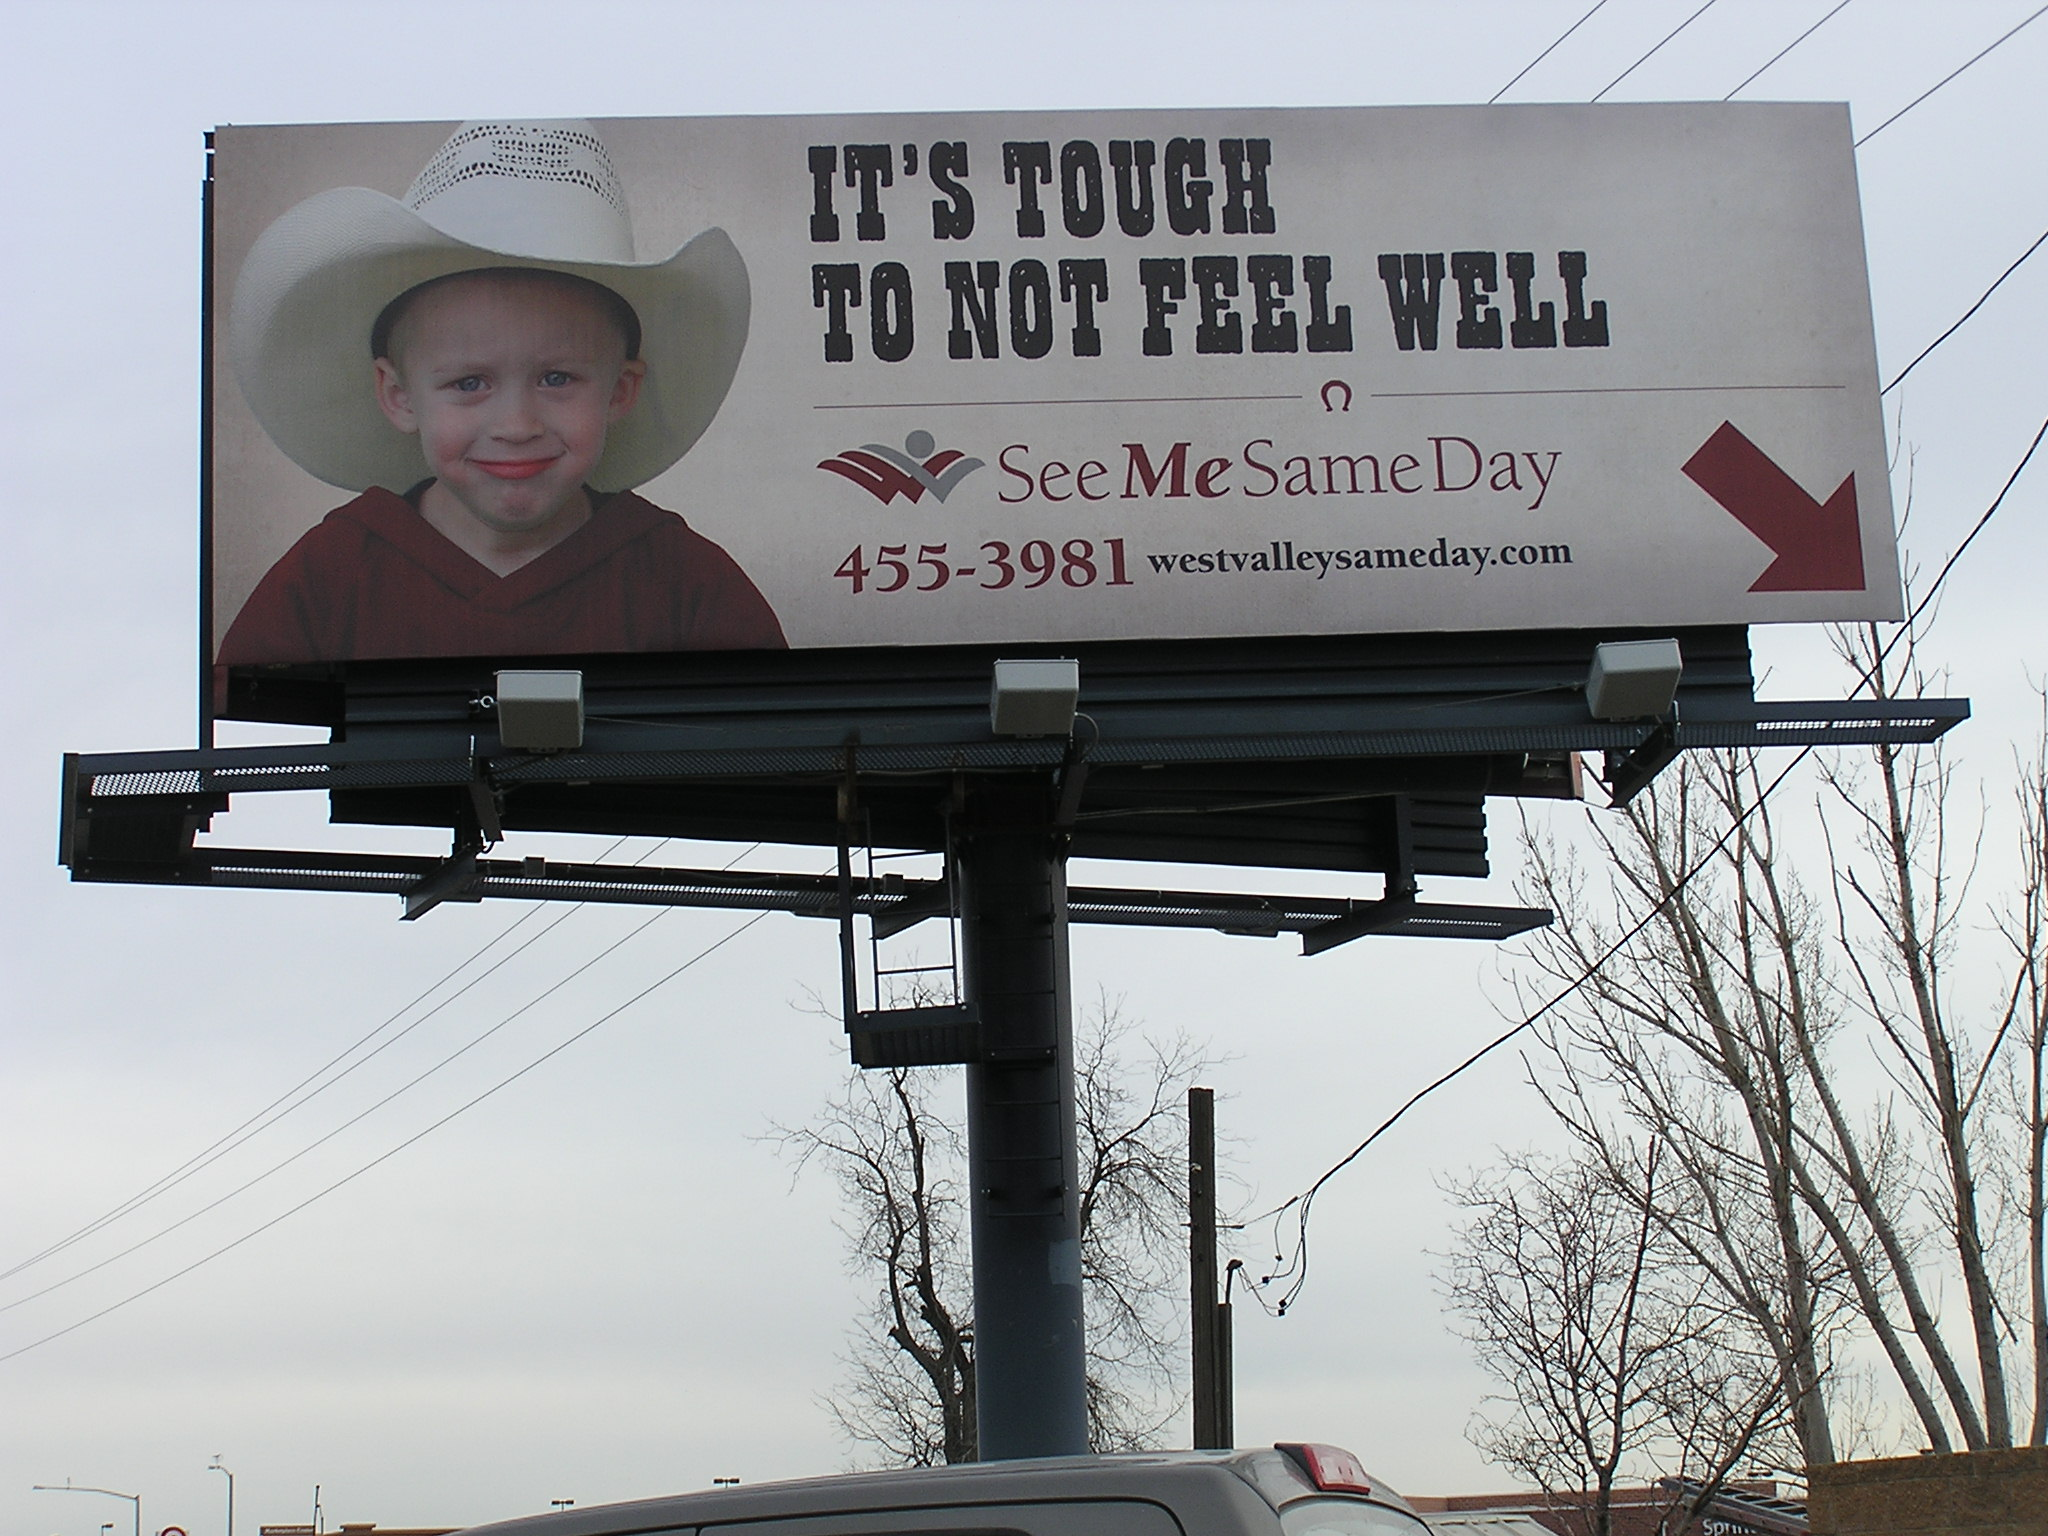 A billboard I designed to appeal to mothers and kids in West Valley, Idaho. You can be in and out of the West Valley Medical Center because of the See Me Same Day Service.